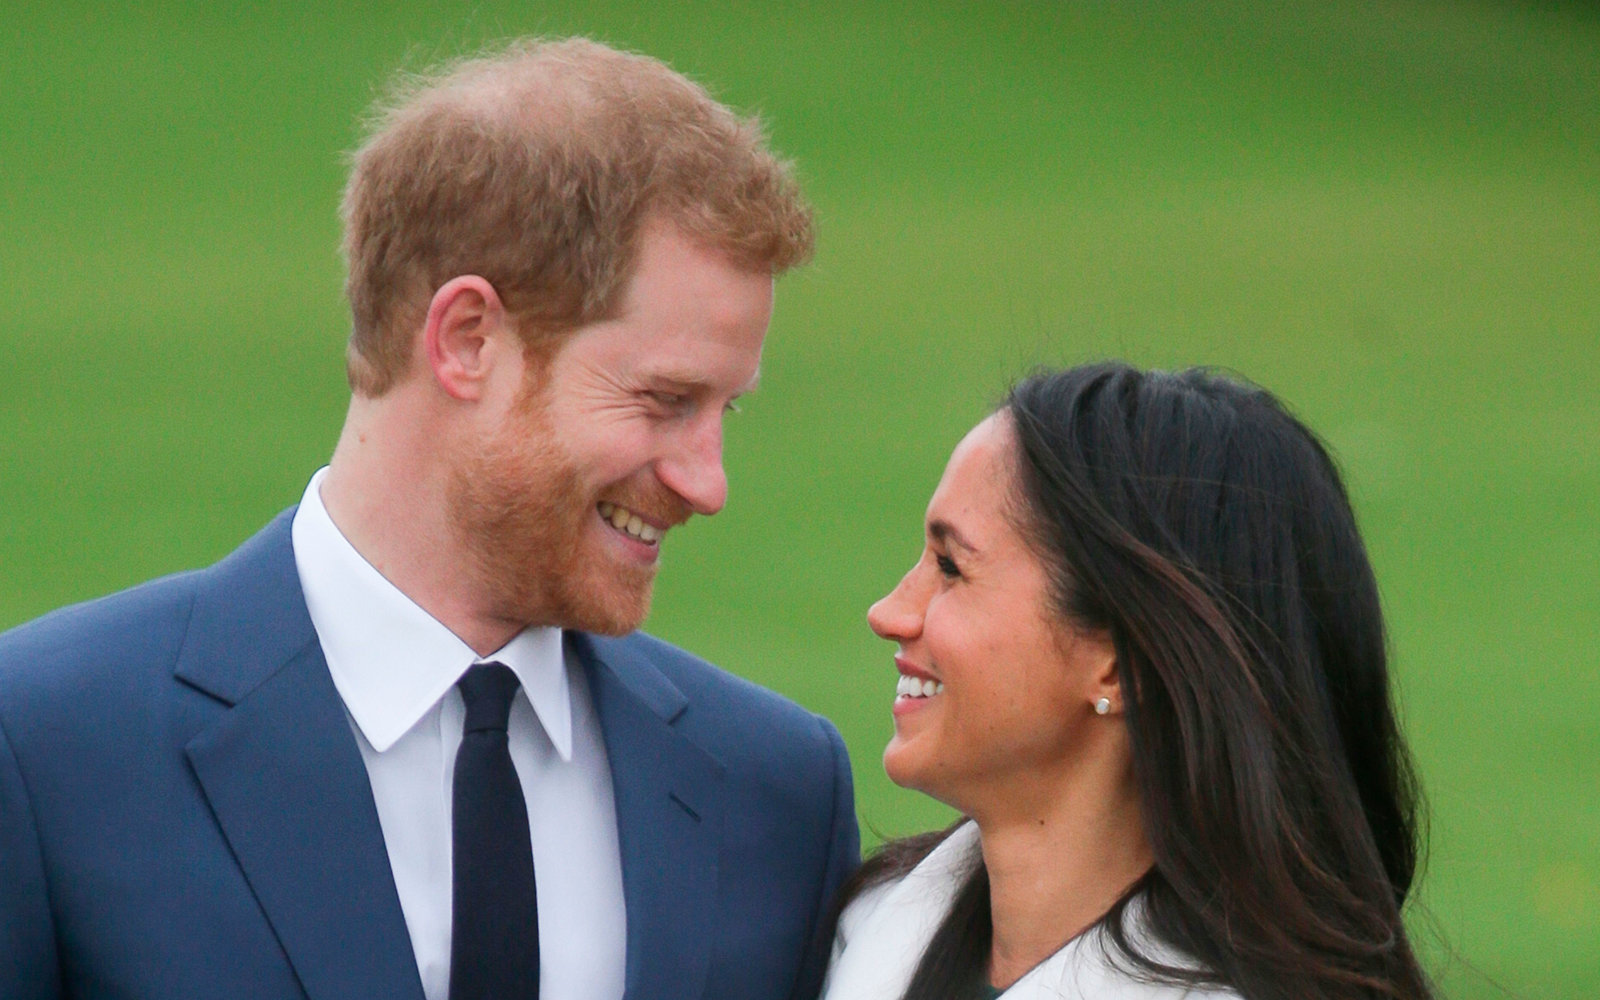 Meghan Markle and Prince Harry announce their engagement at Kensington Palace